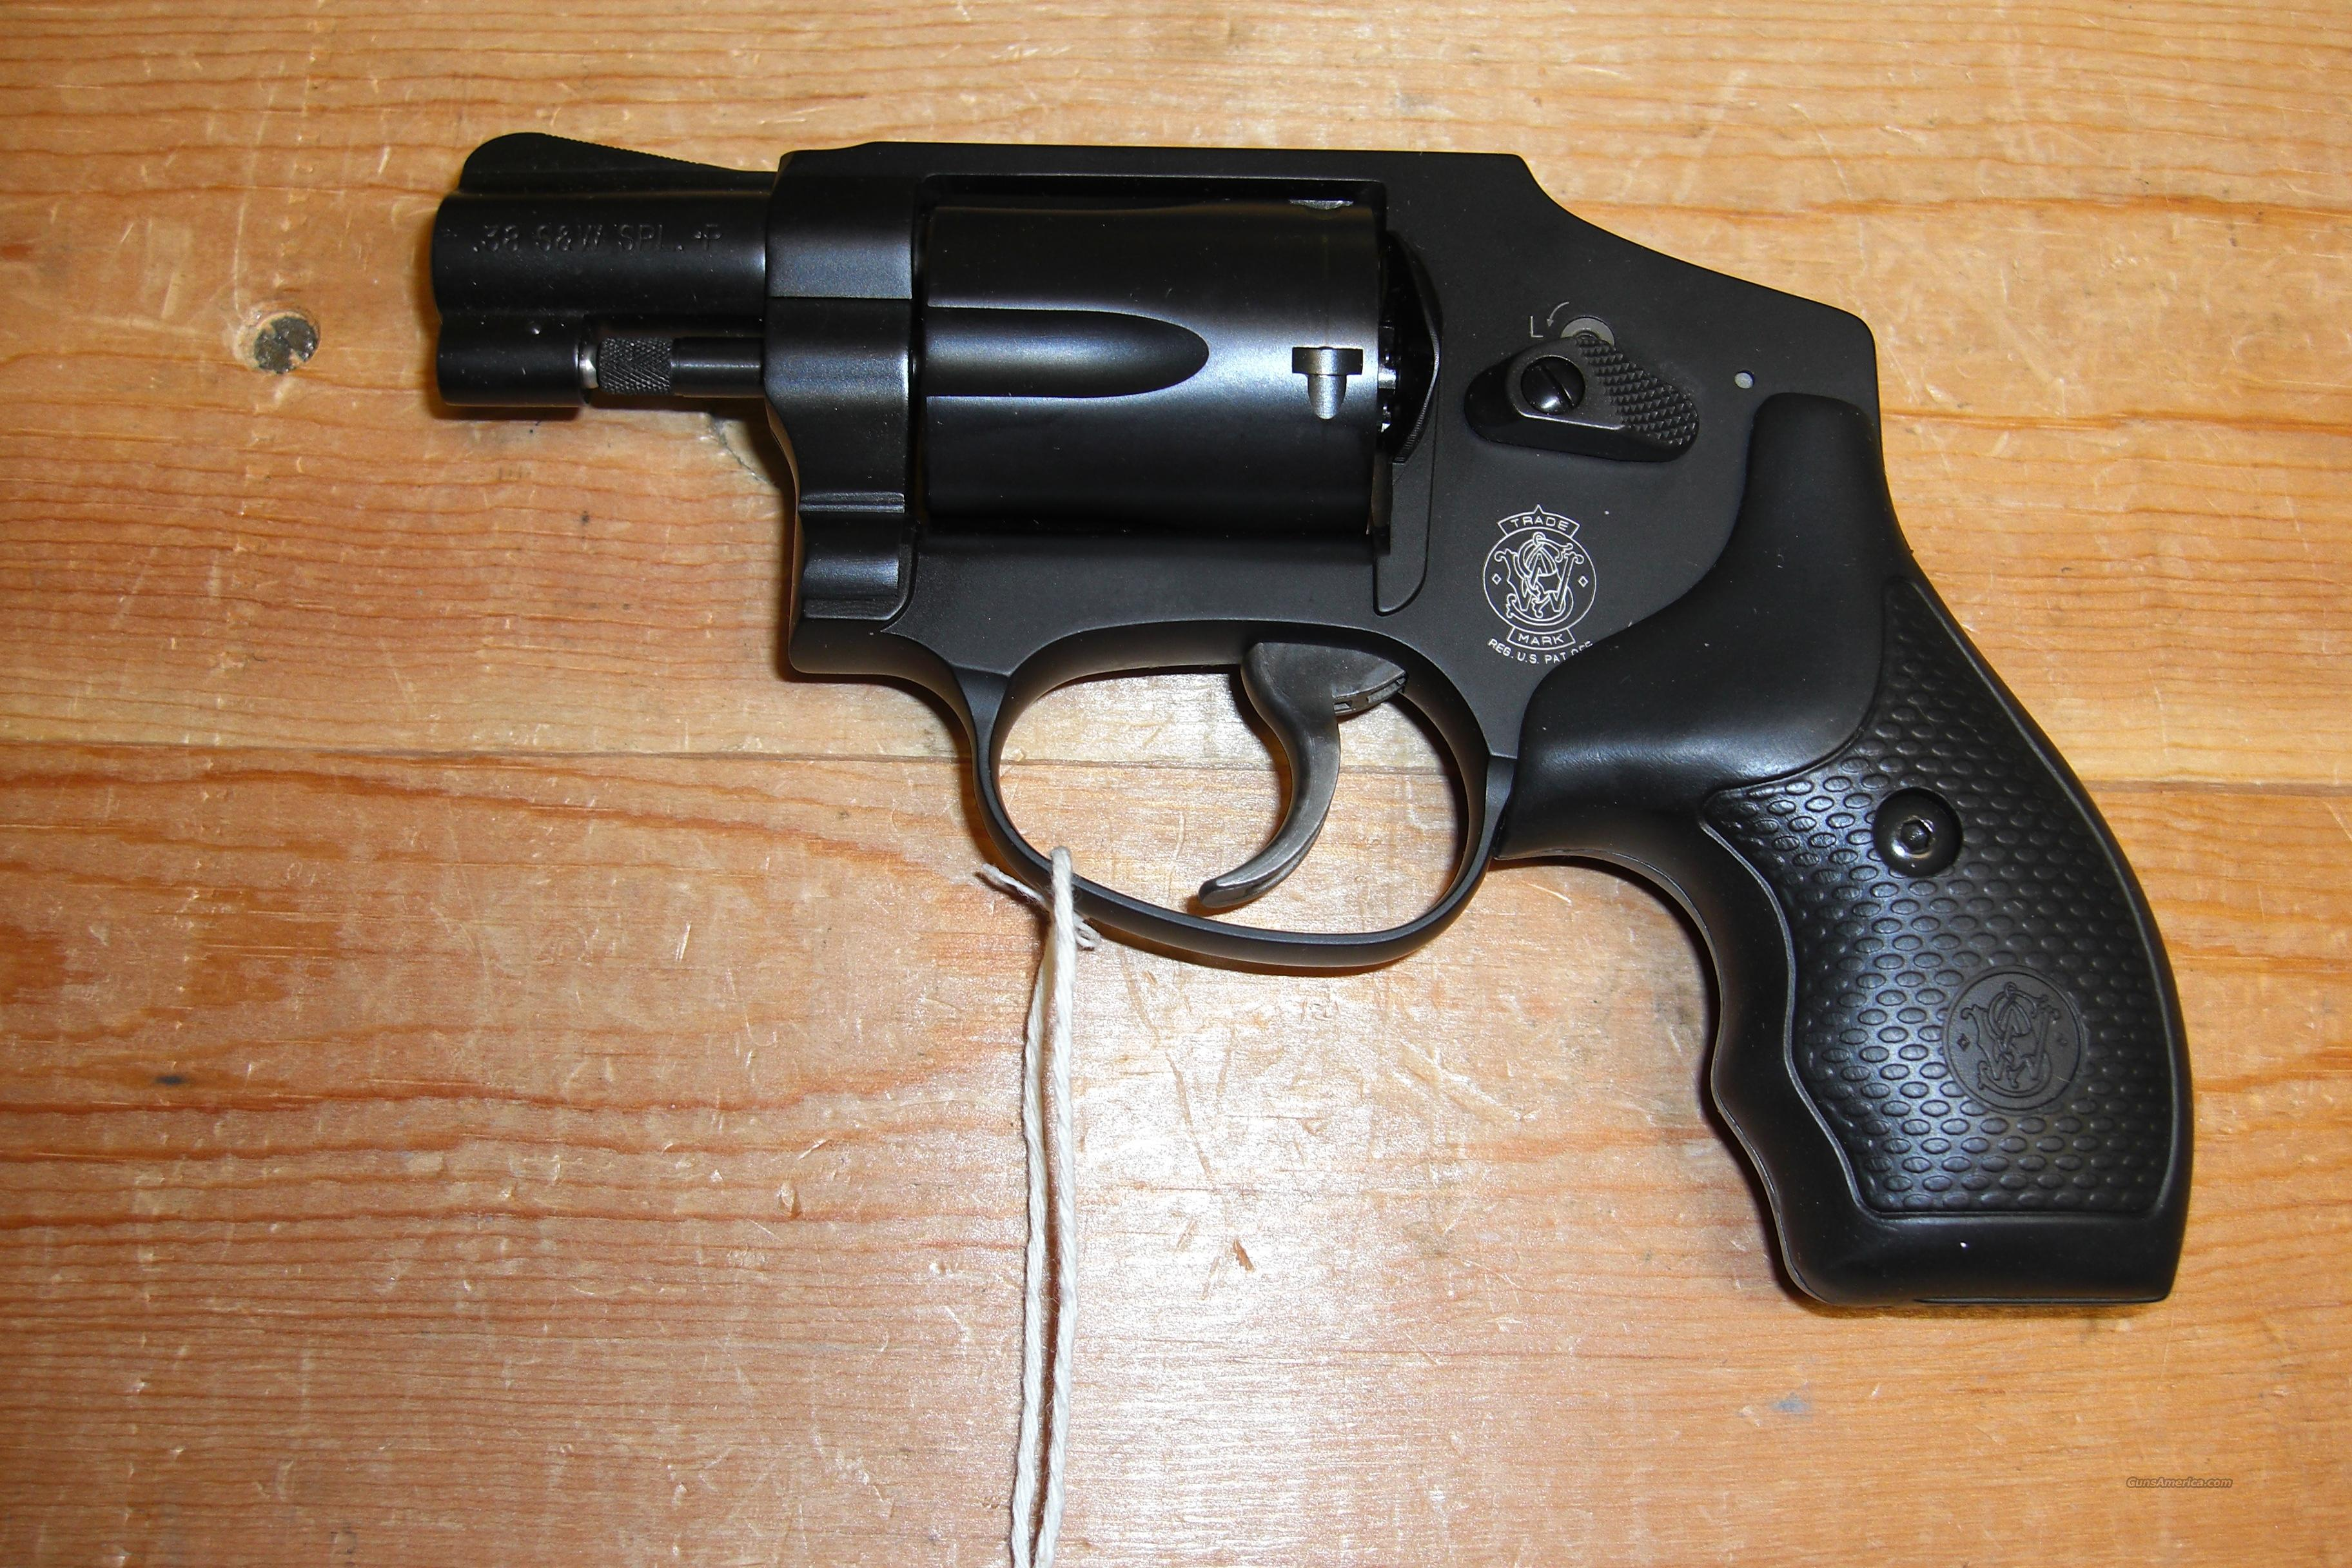 442-2  hammerless  Guns > Pistols > Smith & Wesson Revolvers > Pocket Pistols